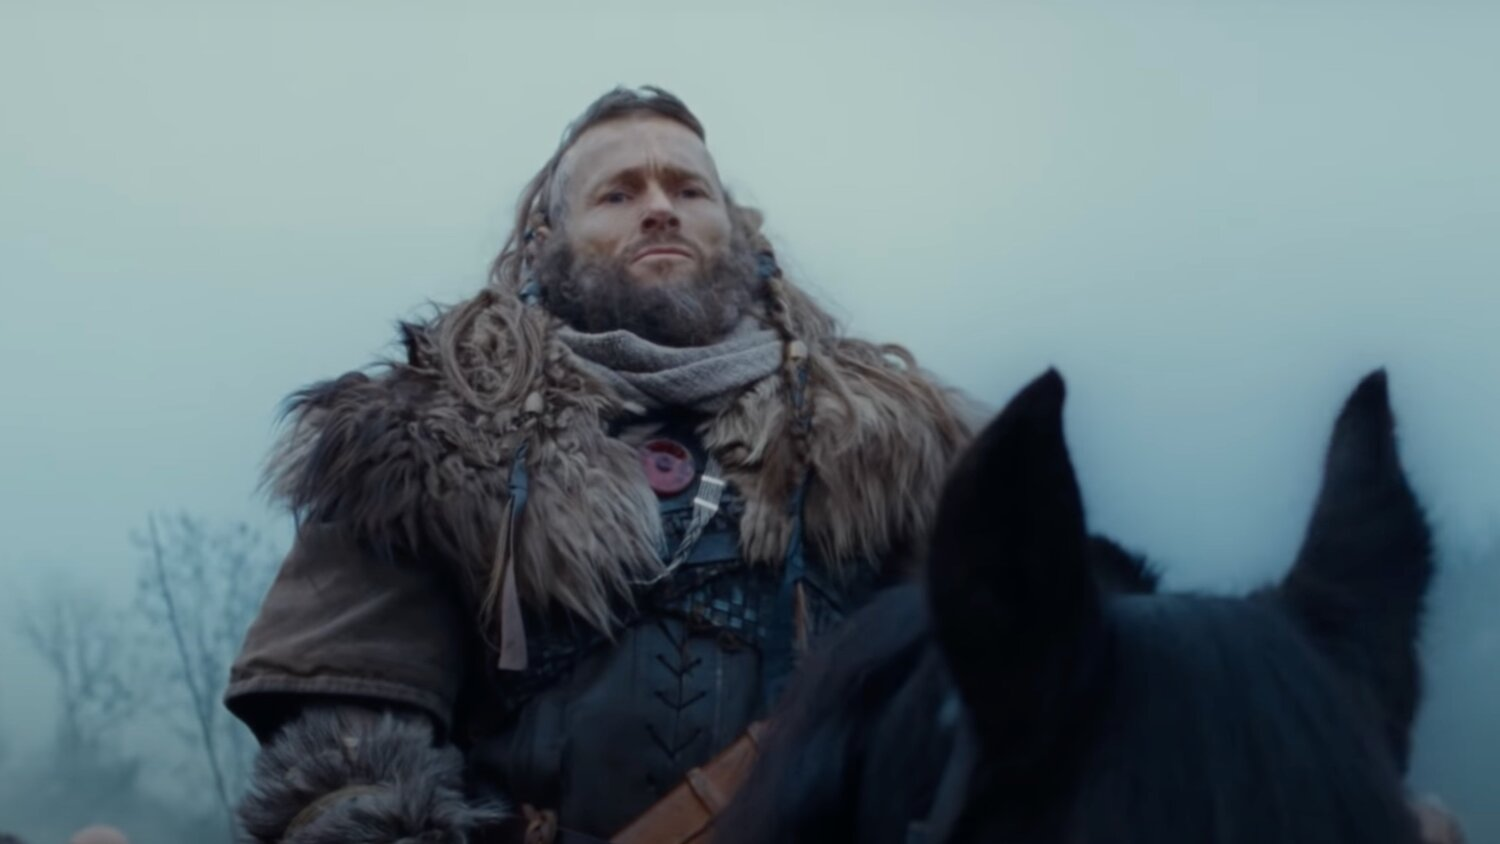 funny-danish-psa-short-film-tells-the-tale-of-a-viking-who-doesnt-want-to-wear-his-helmet